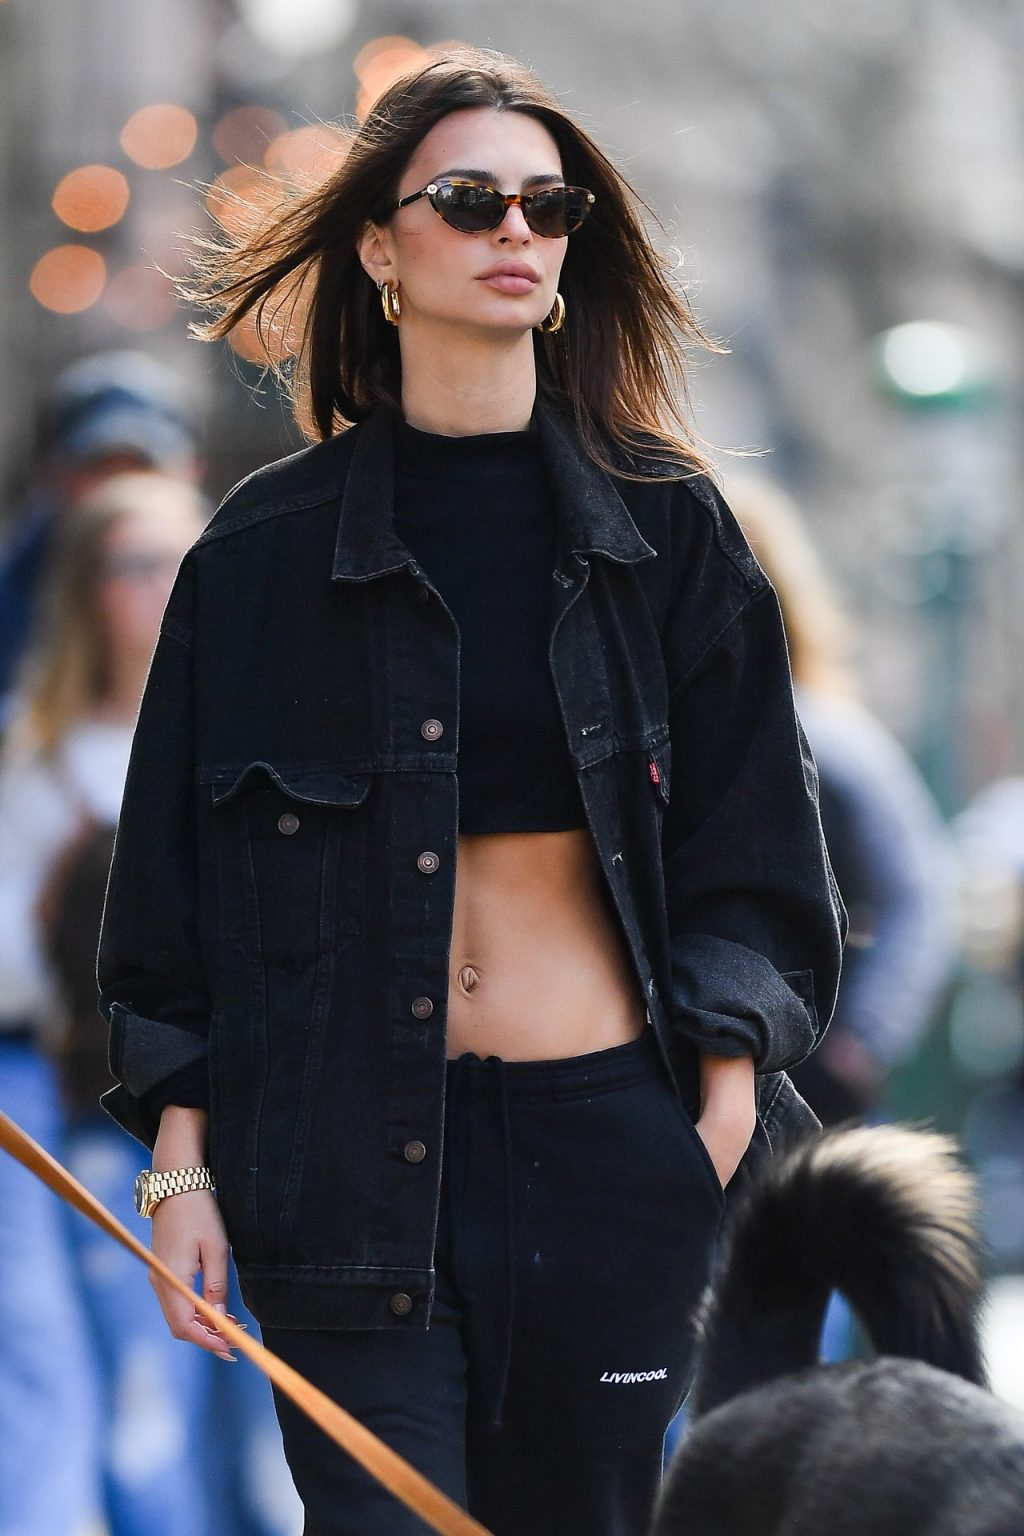 Emily Ratajkowski Walks With Her Dog Colombo in NYC (38 Photos)